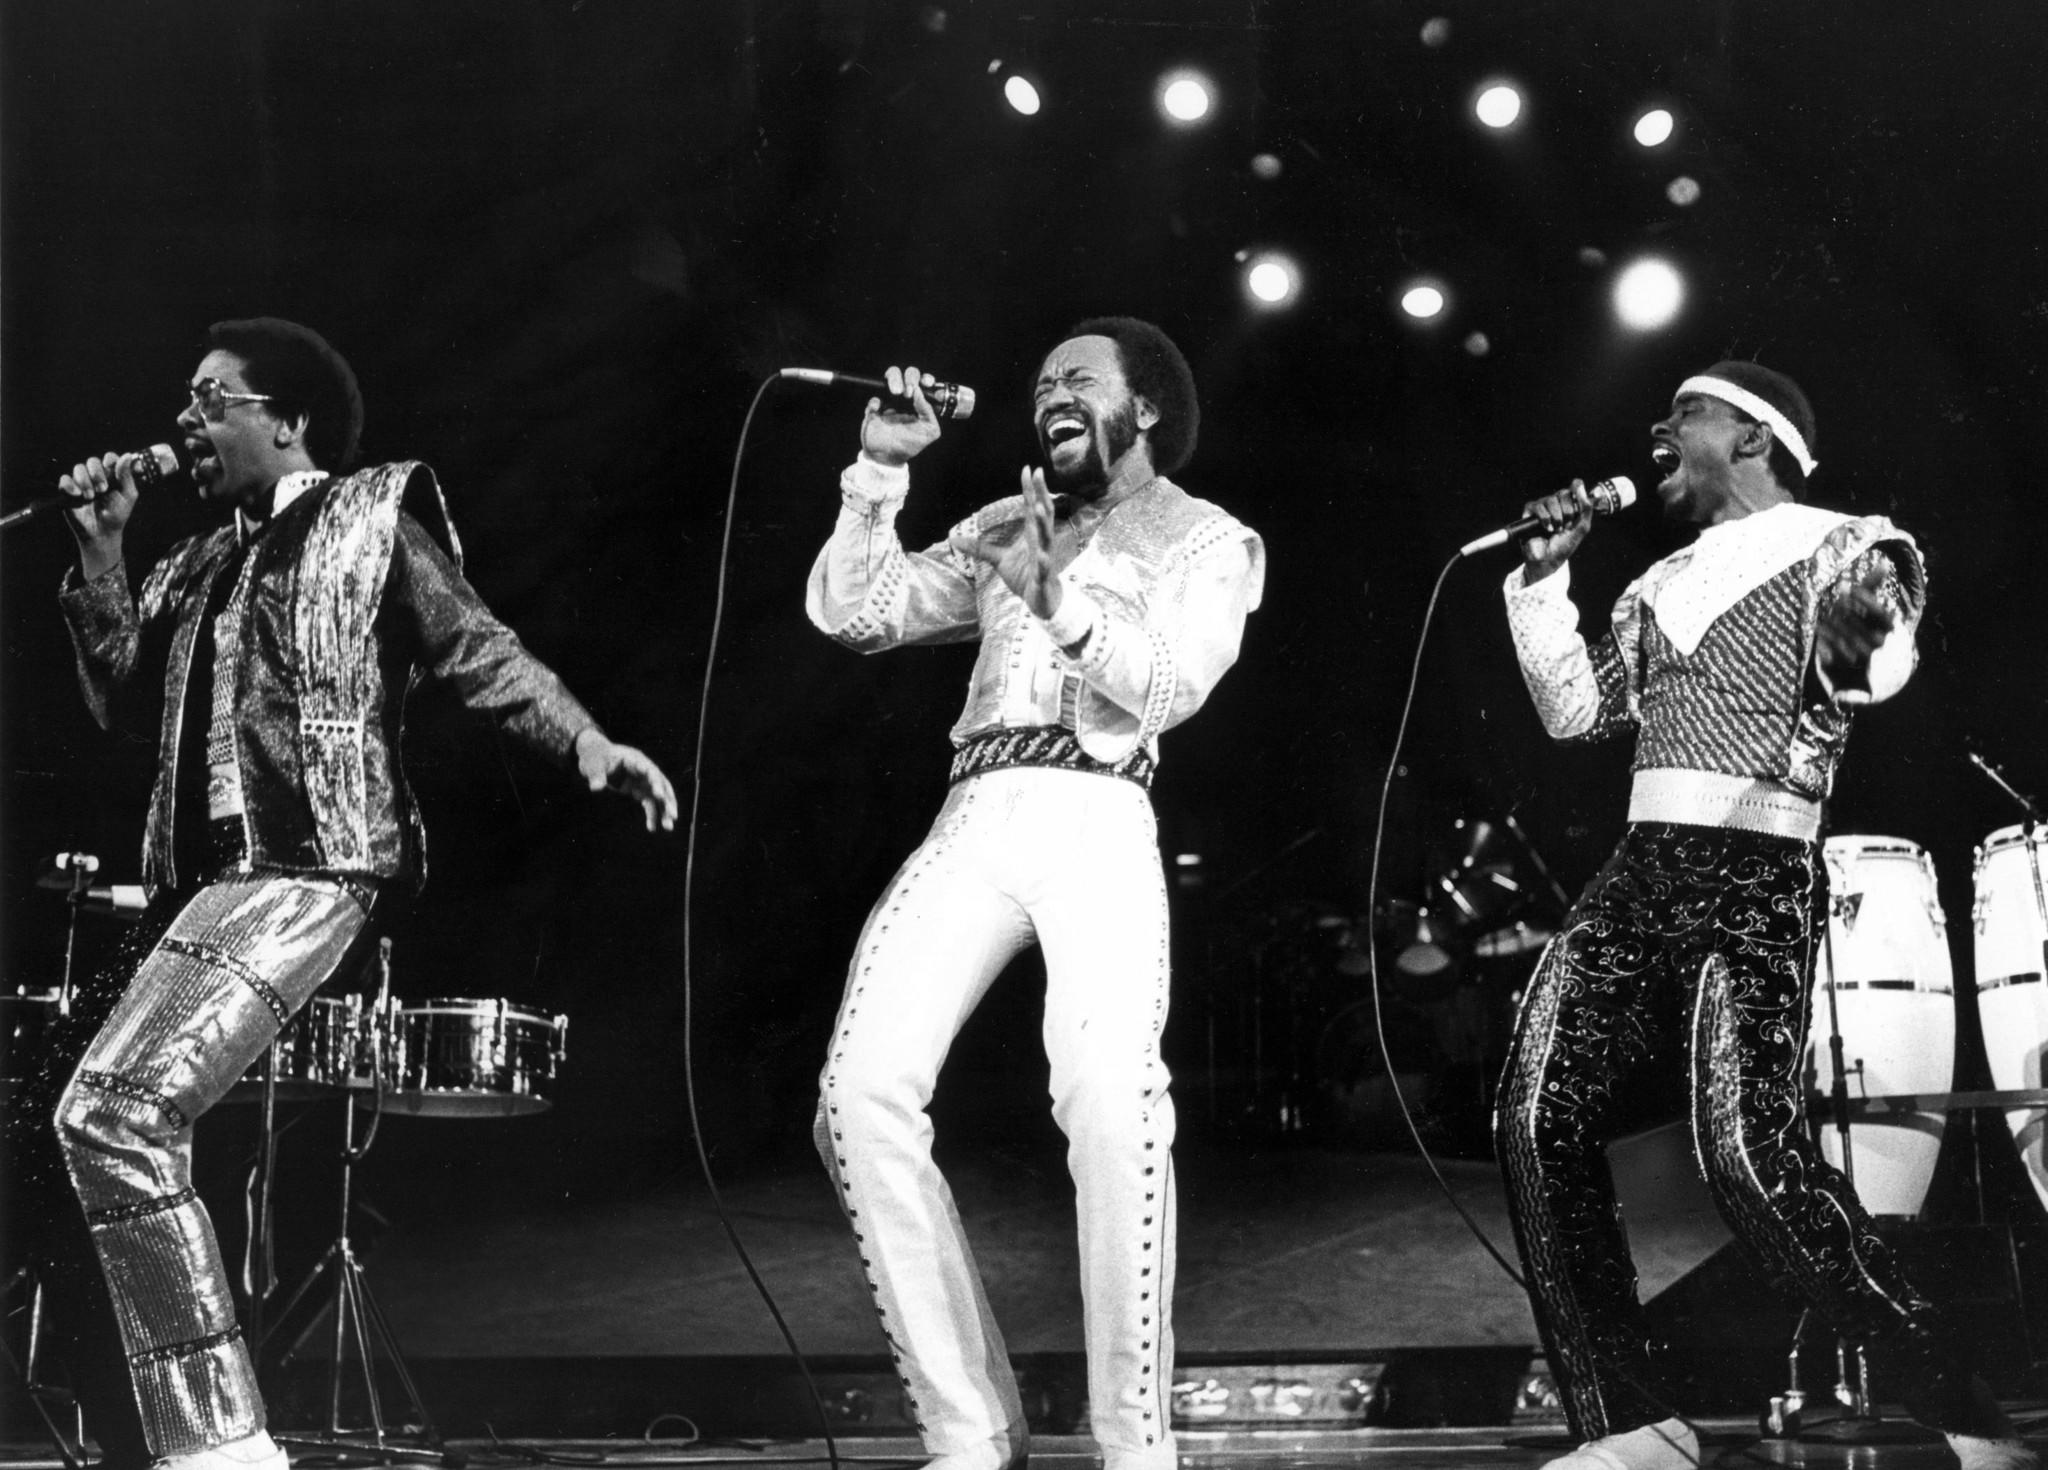 the story of maurice white and Mr white, a great musician with a long pedigree as a jazz drummer, turned earth,  wind & fire into one of the most successful crossover acts in pop music history.